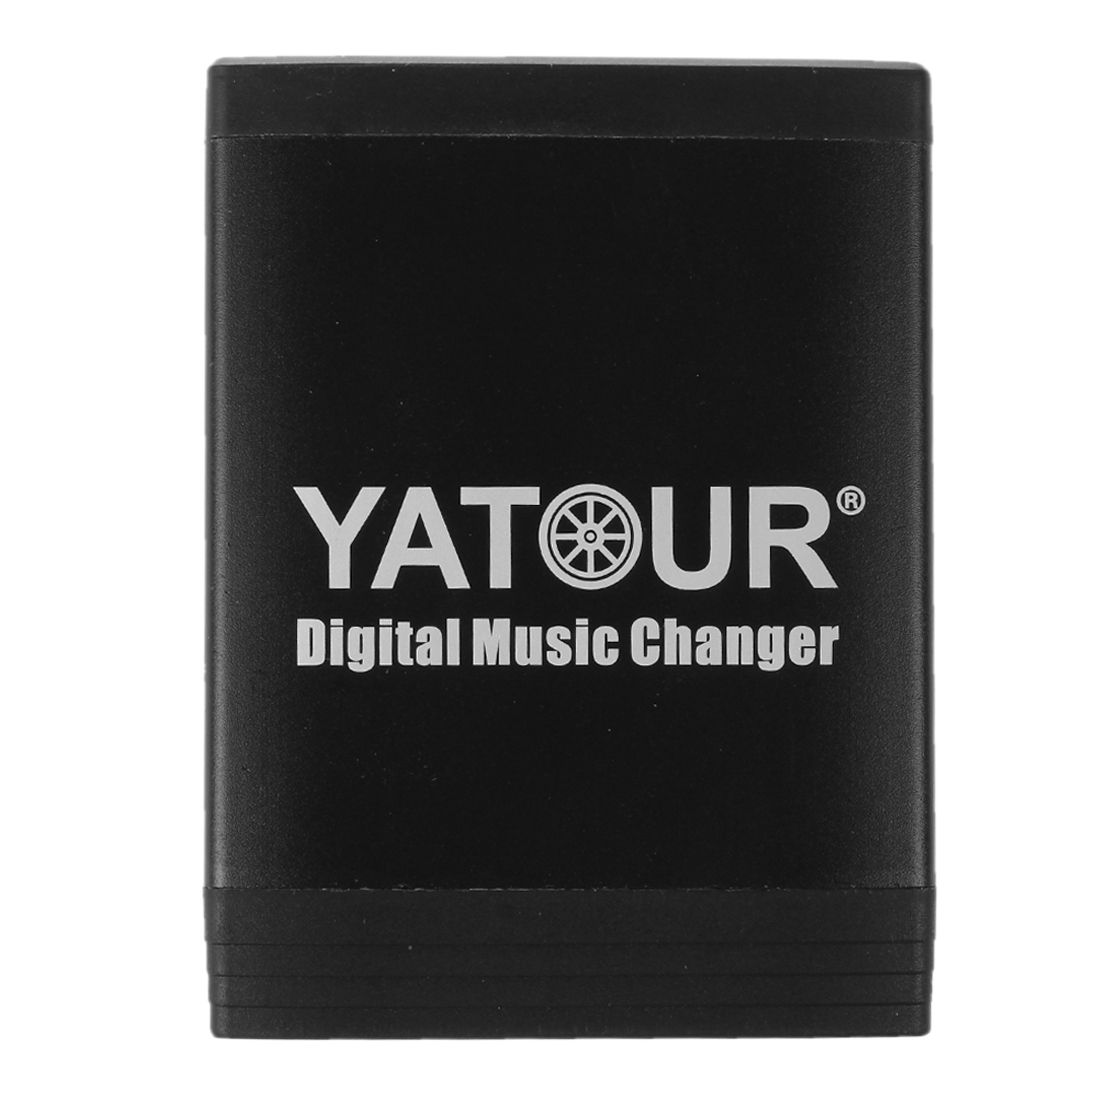 YATOUR Digital Music Changer for BMW 3pin+6pin Trunk Connector USB Sd AUX Mp3 Adapter yatour for alfa romeo 147 156 159 brera gt spider mito car digital music changer usb mp3 aux adapter blaupunkt connect nav